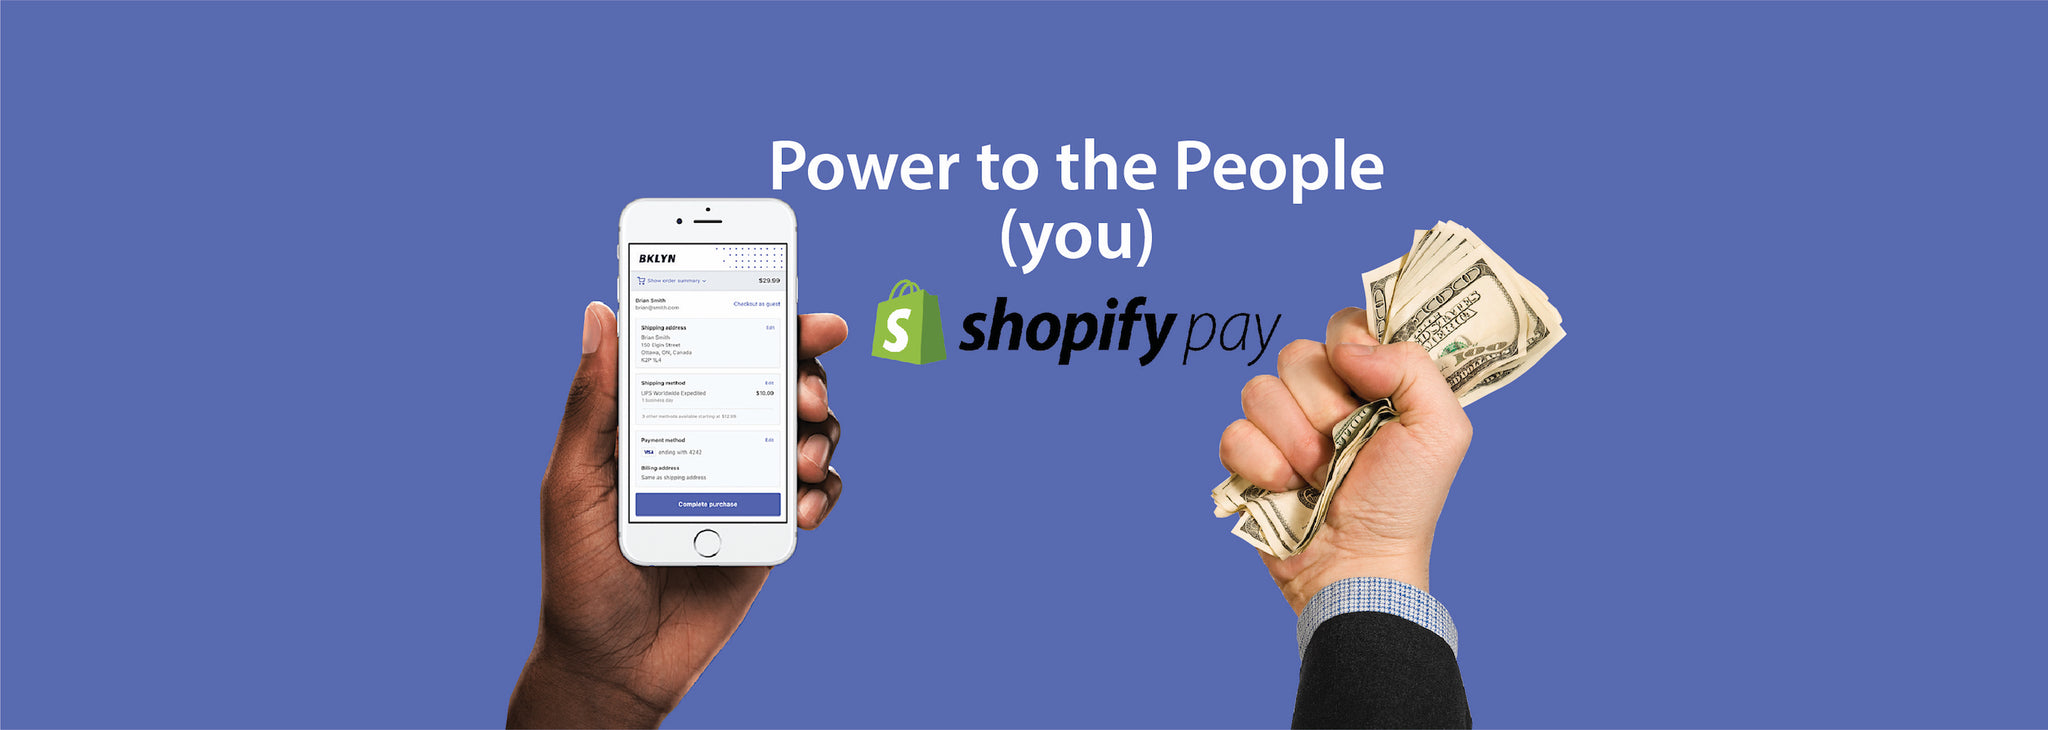 Make Buying Faster AND Easier With Shopify Pay